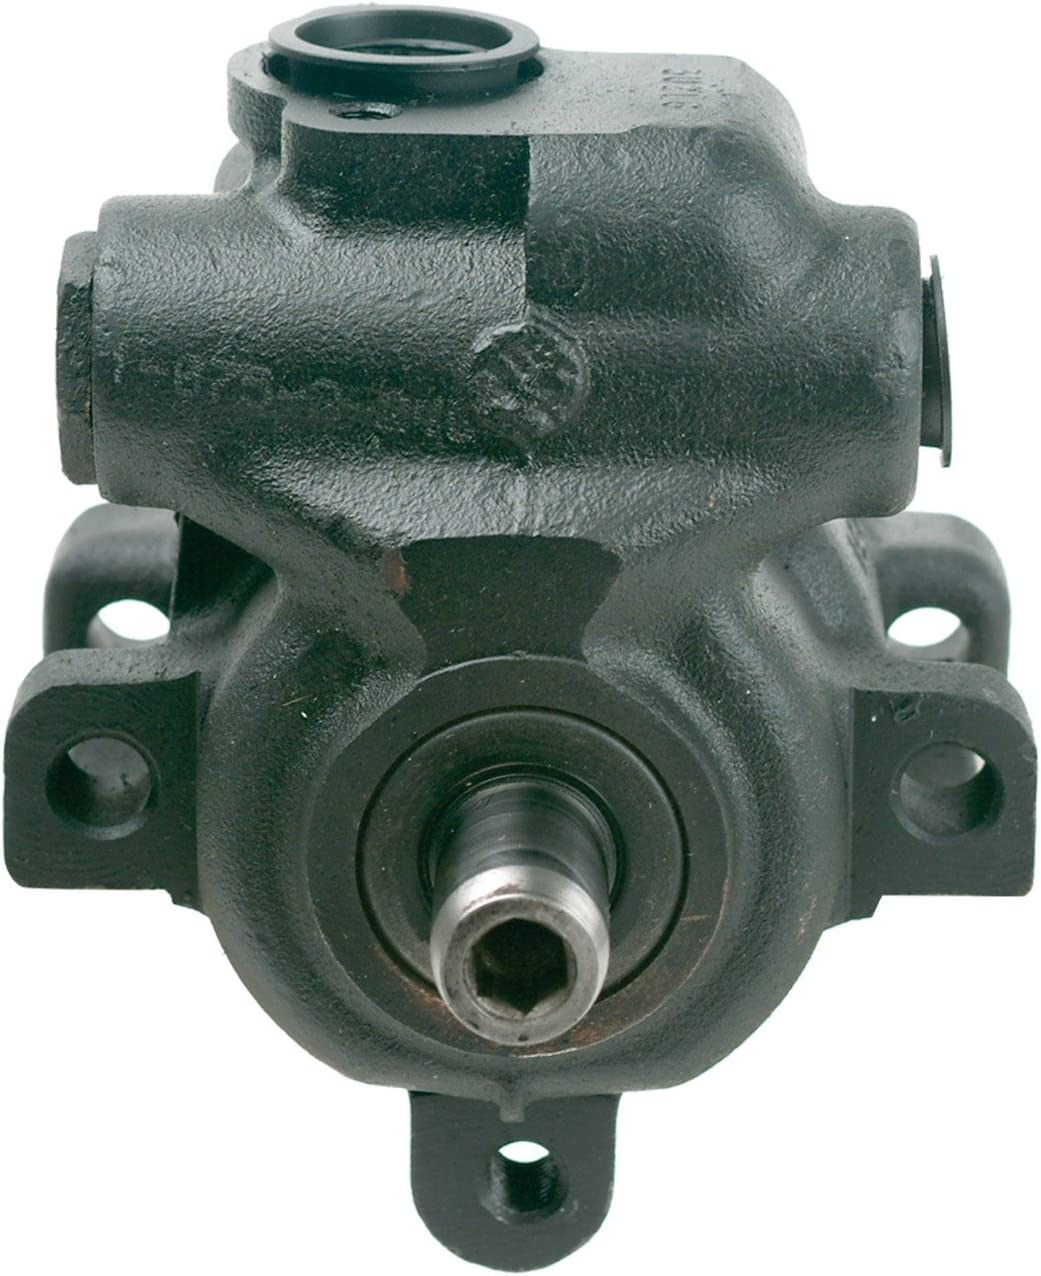 A-1 Cardone 20-326 Remanufactured Domestic Power Steering Pump